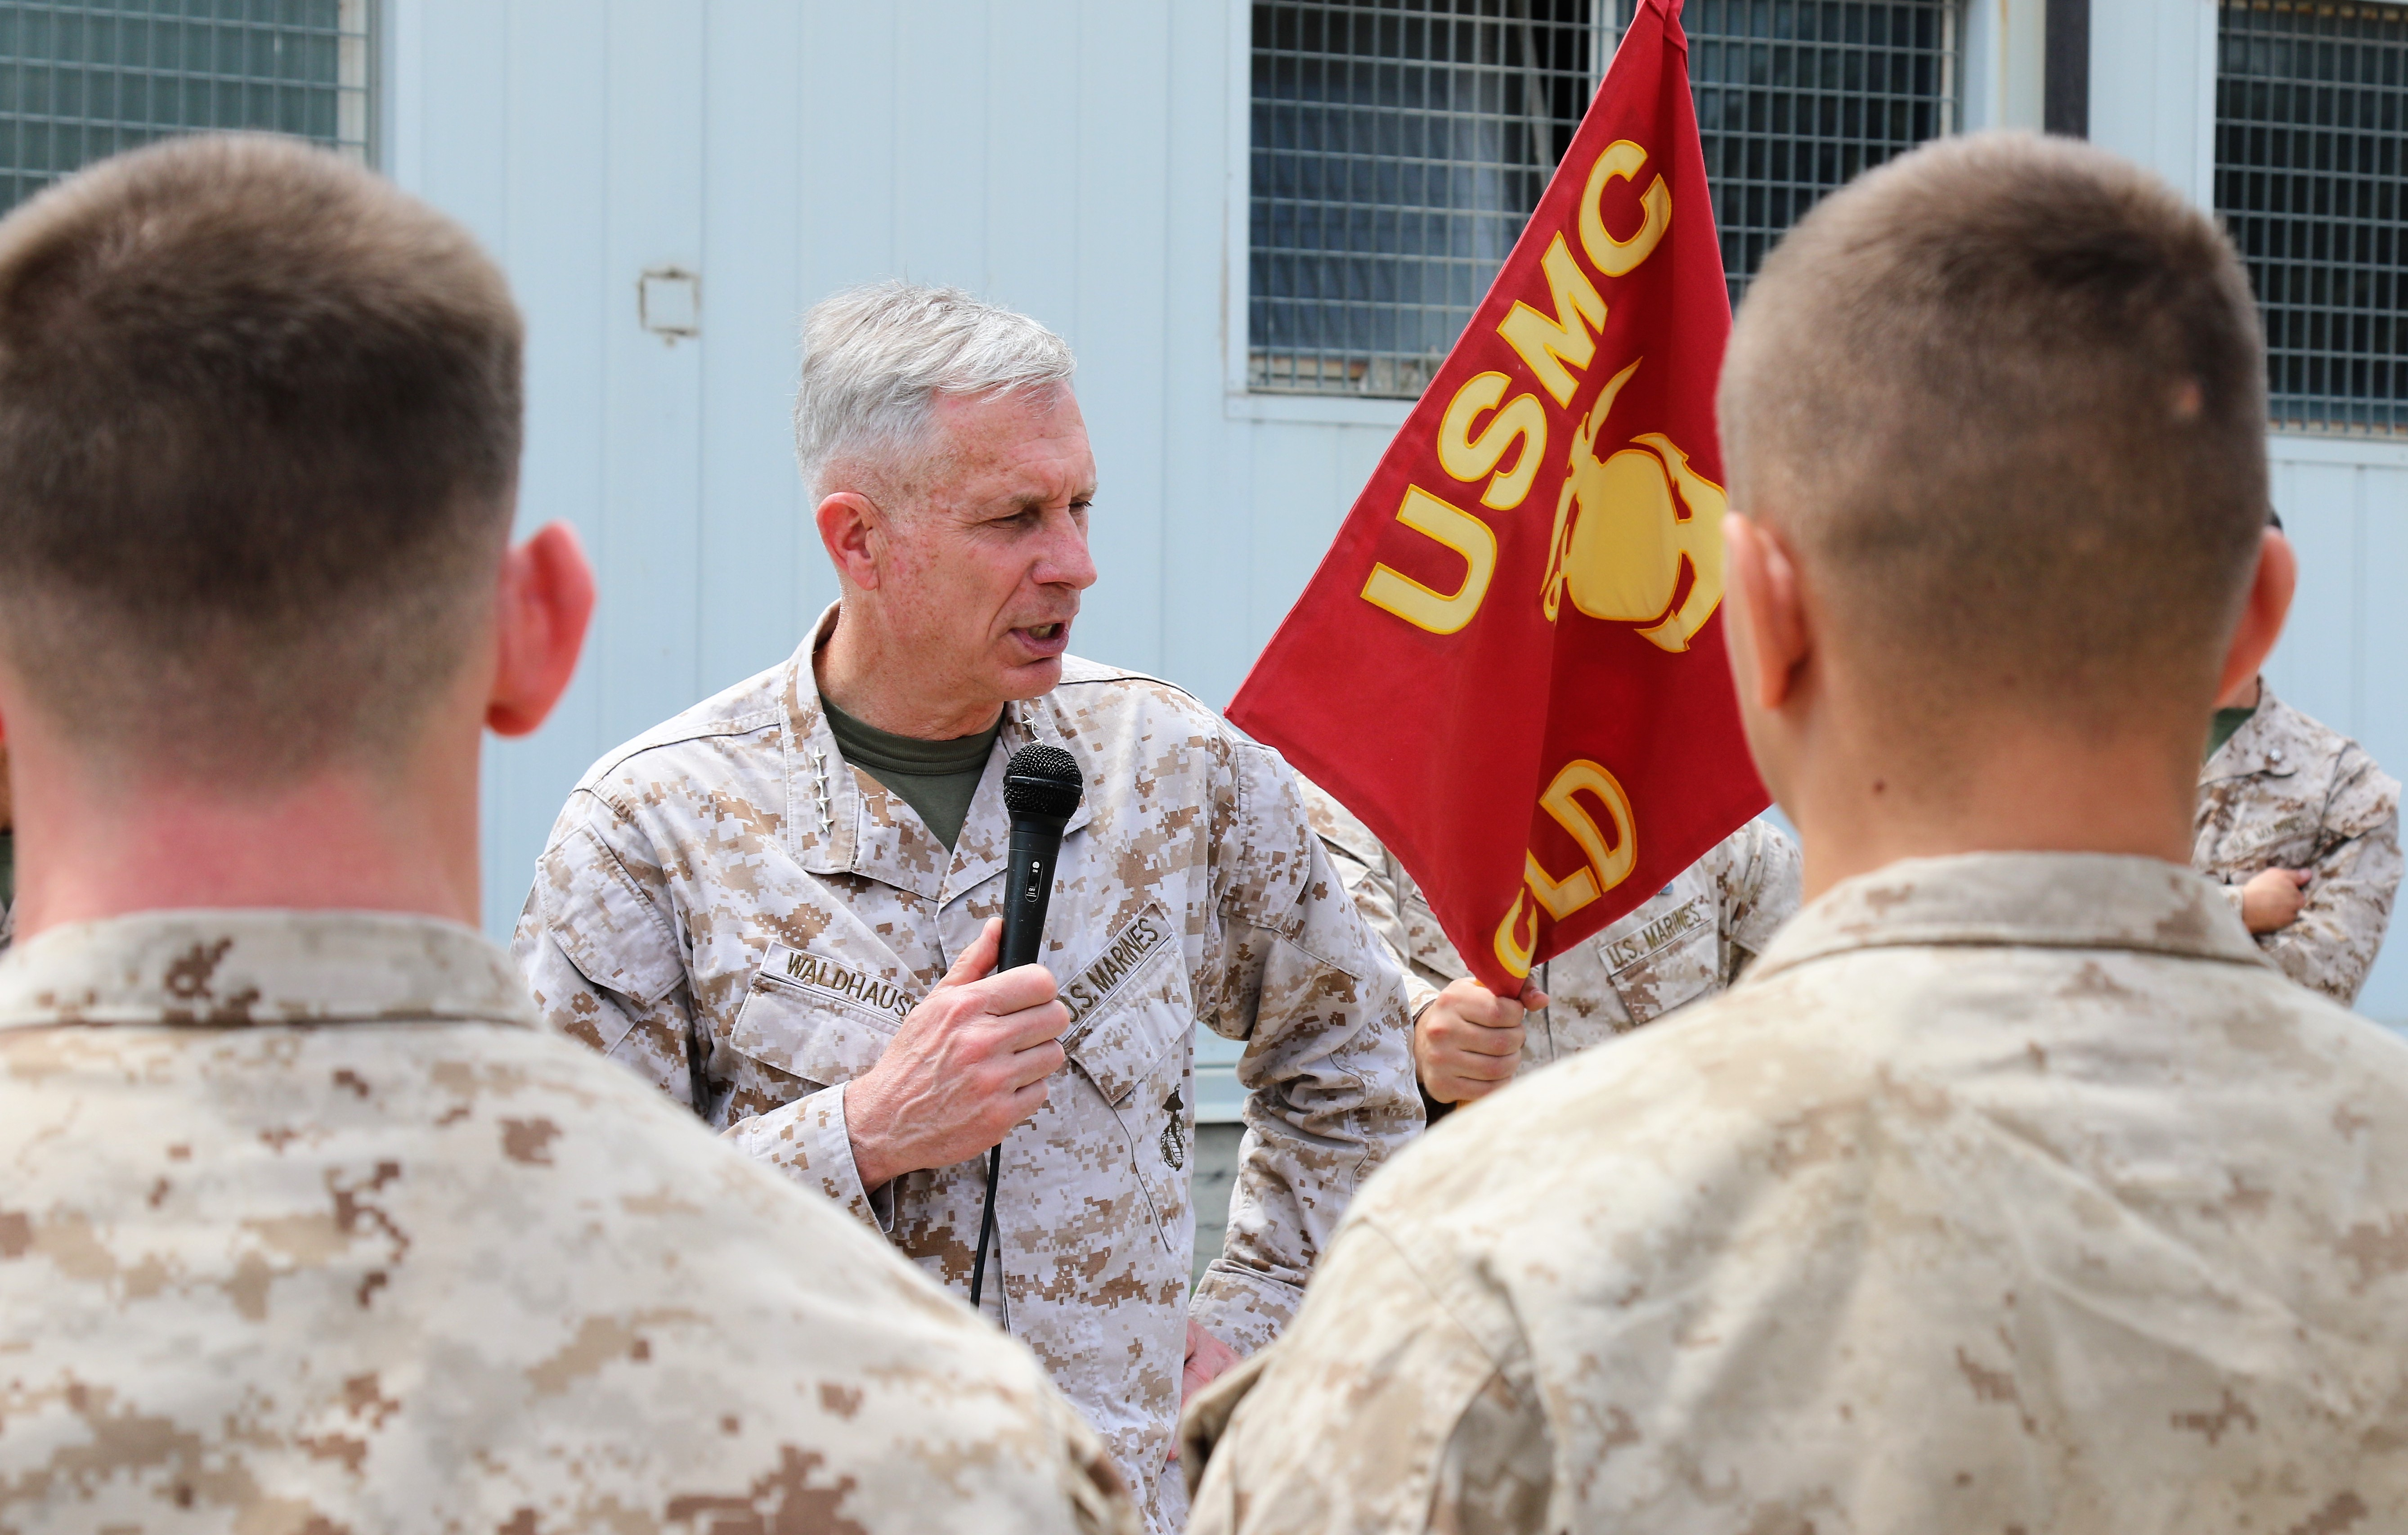 Marine Corps Gen. Thomas D. Waldhauser, commander, U.S. Africa Command, talks with U.S. Marines and Sailors with Special Purpose Marine Air-Ground Task Force-Crisis Response-Africa 19.2, Marine Forces Europe and Africa, at Naval Air Station Sigonella, Italy, May 9, 2019. Waldhauser spoke with the SPMAGTF-CR-AF troops about their mission and role as a crisis-response force.